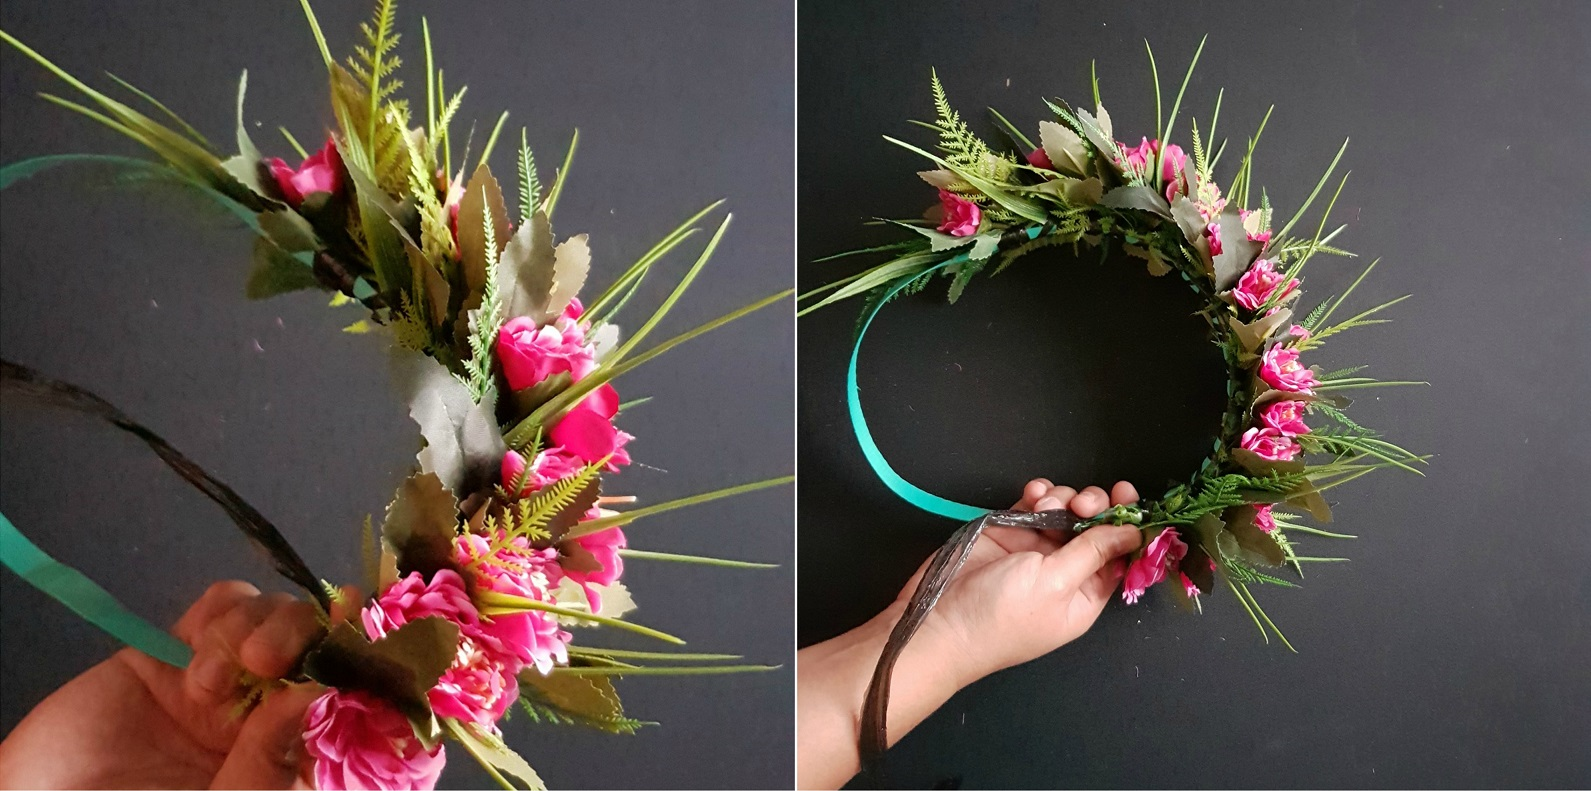 How to make cook island ei katu flower crown or head garland manaui youve finished your ei katu when you can no longer add anymore leaves or flowers the easiest way to complete it is by wrapping the raffia in between each izmirmasajfo